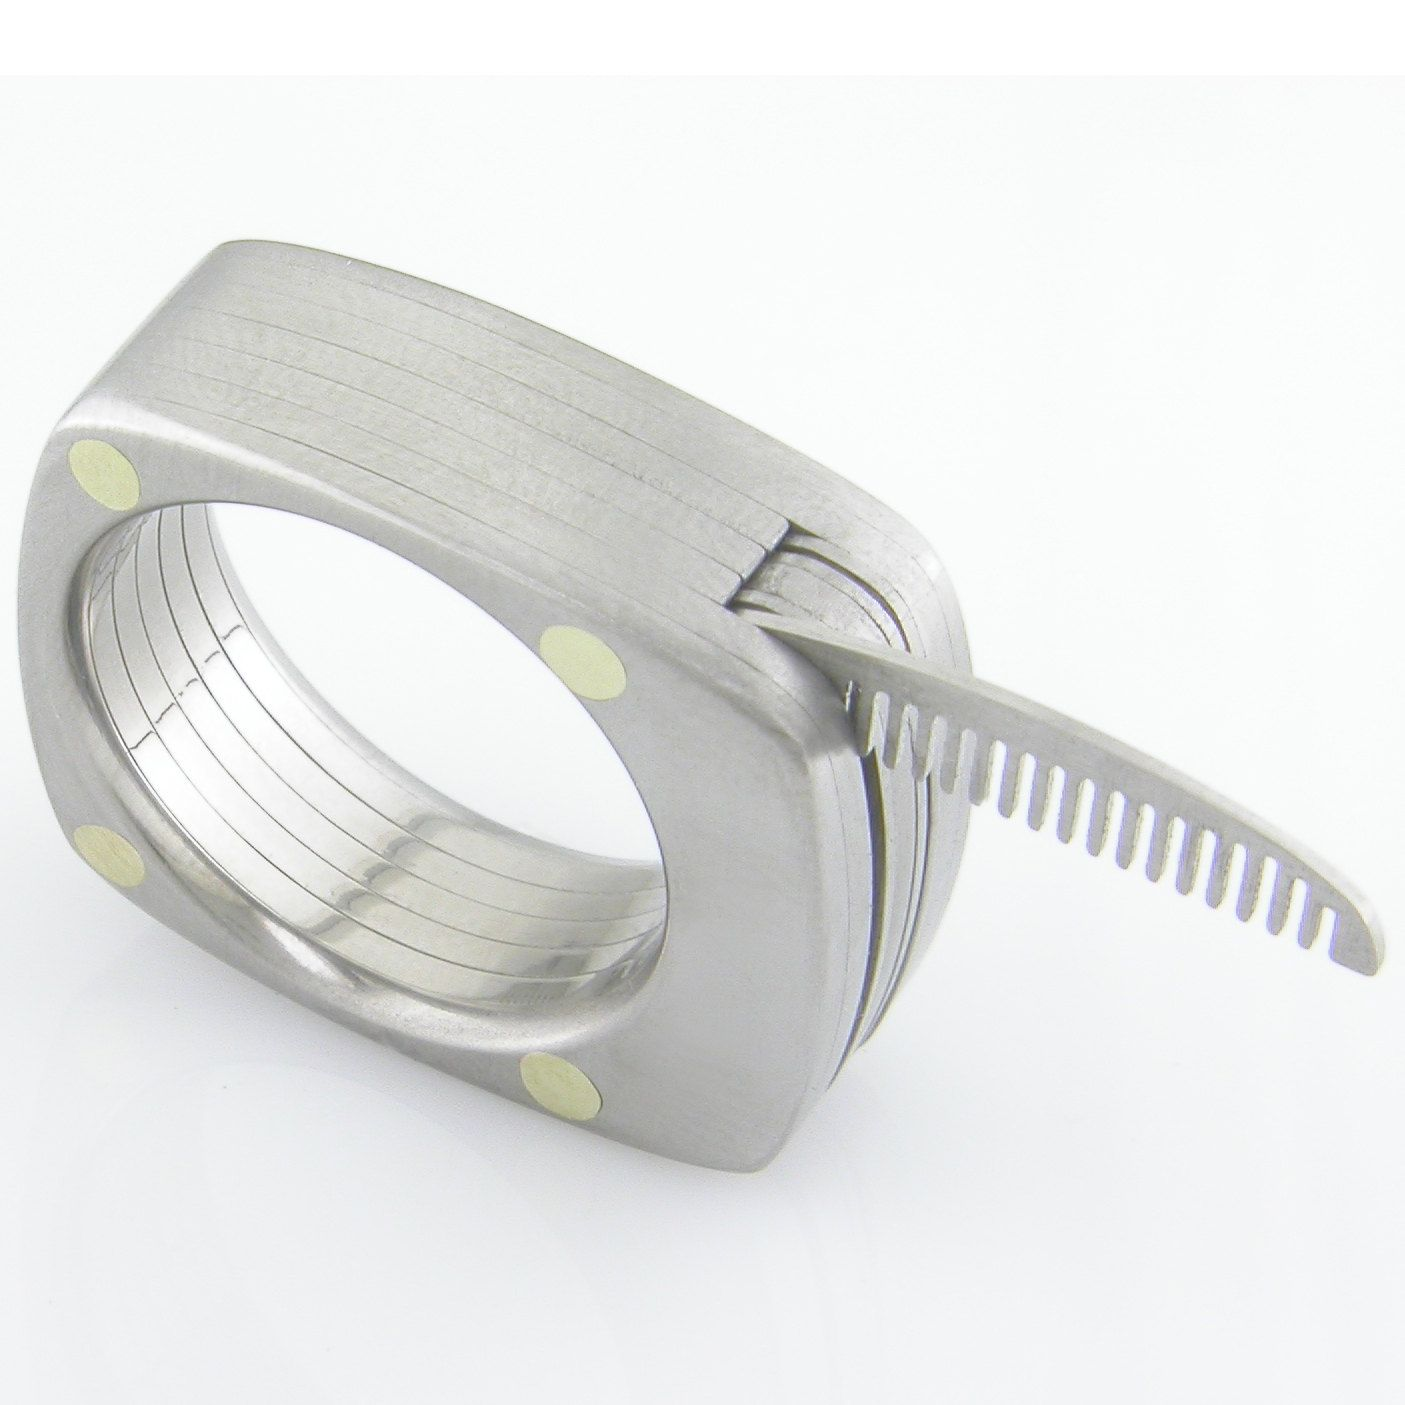 d43eed58915 The Man Titanium Ring by Bruce Boone